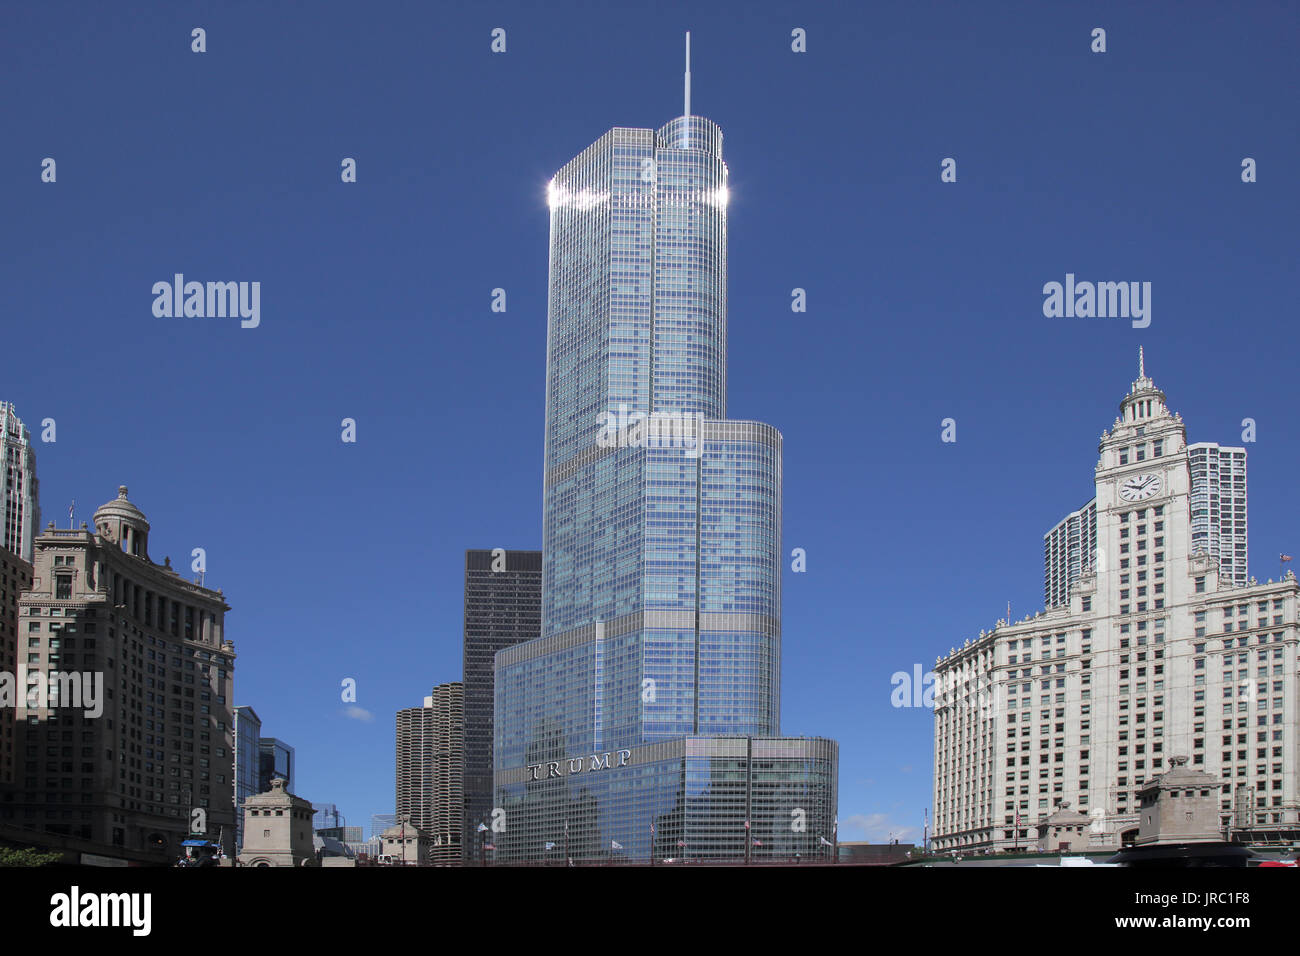 trump tower chicago illinois Stock Photo